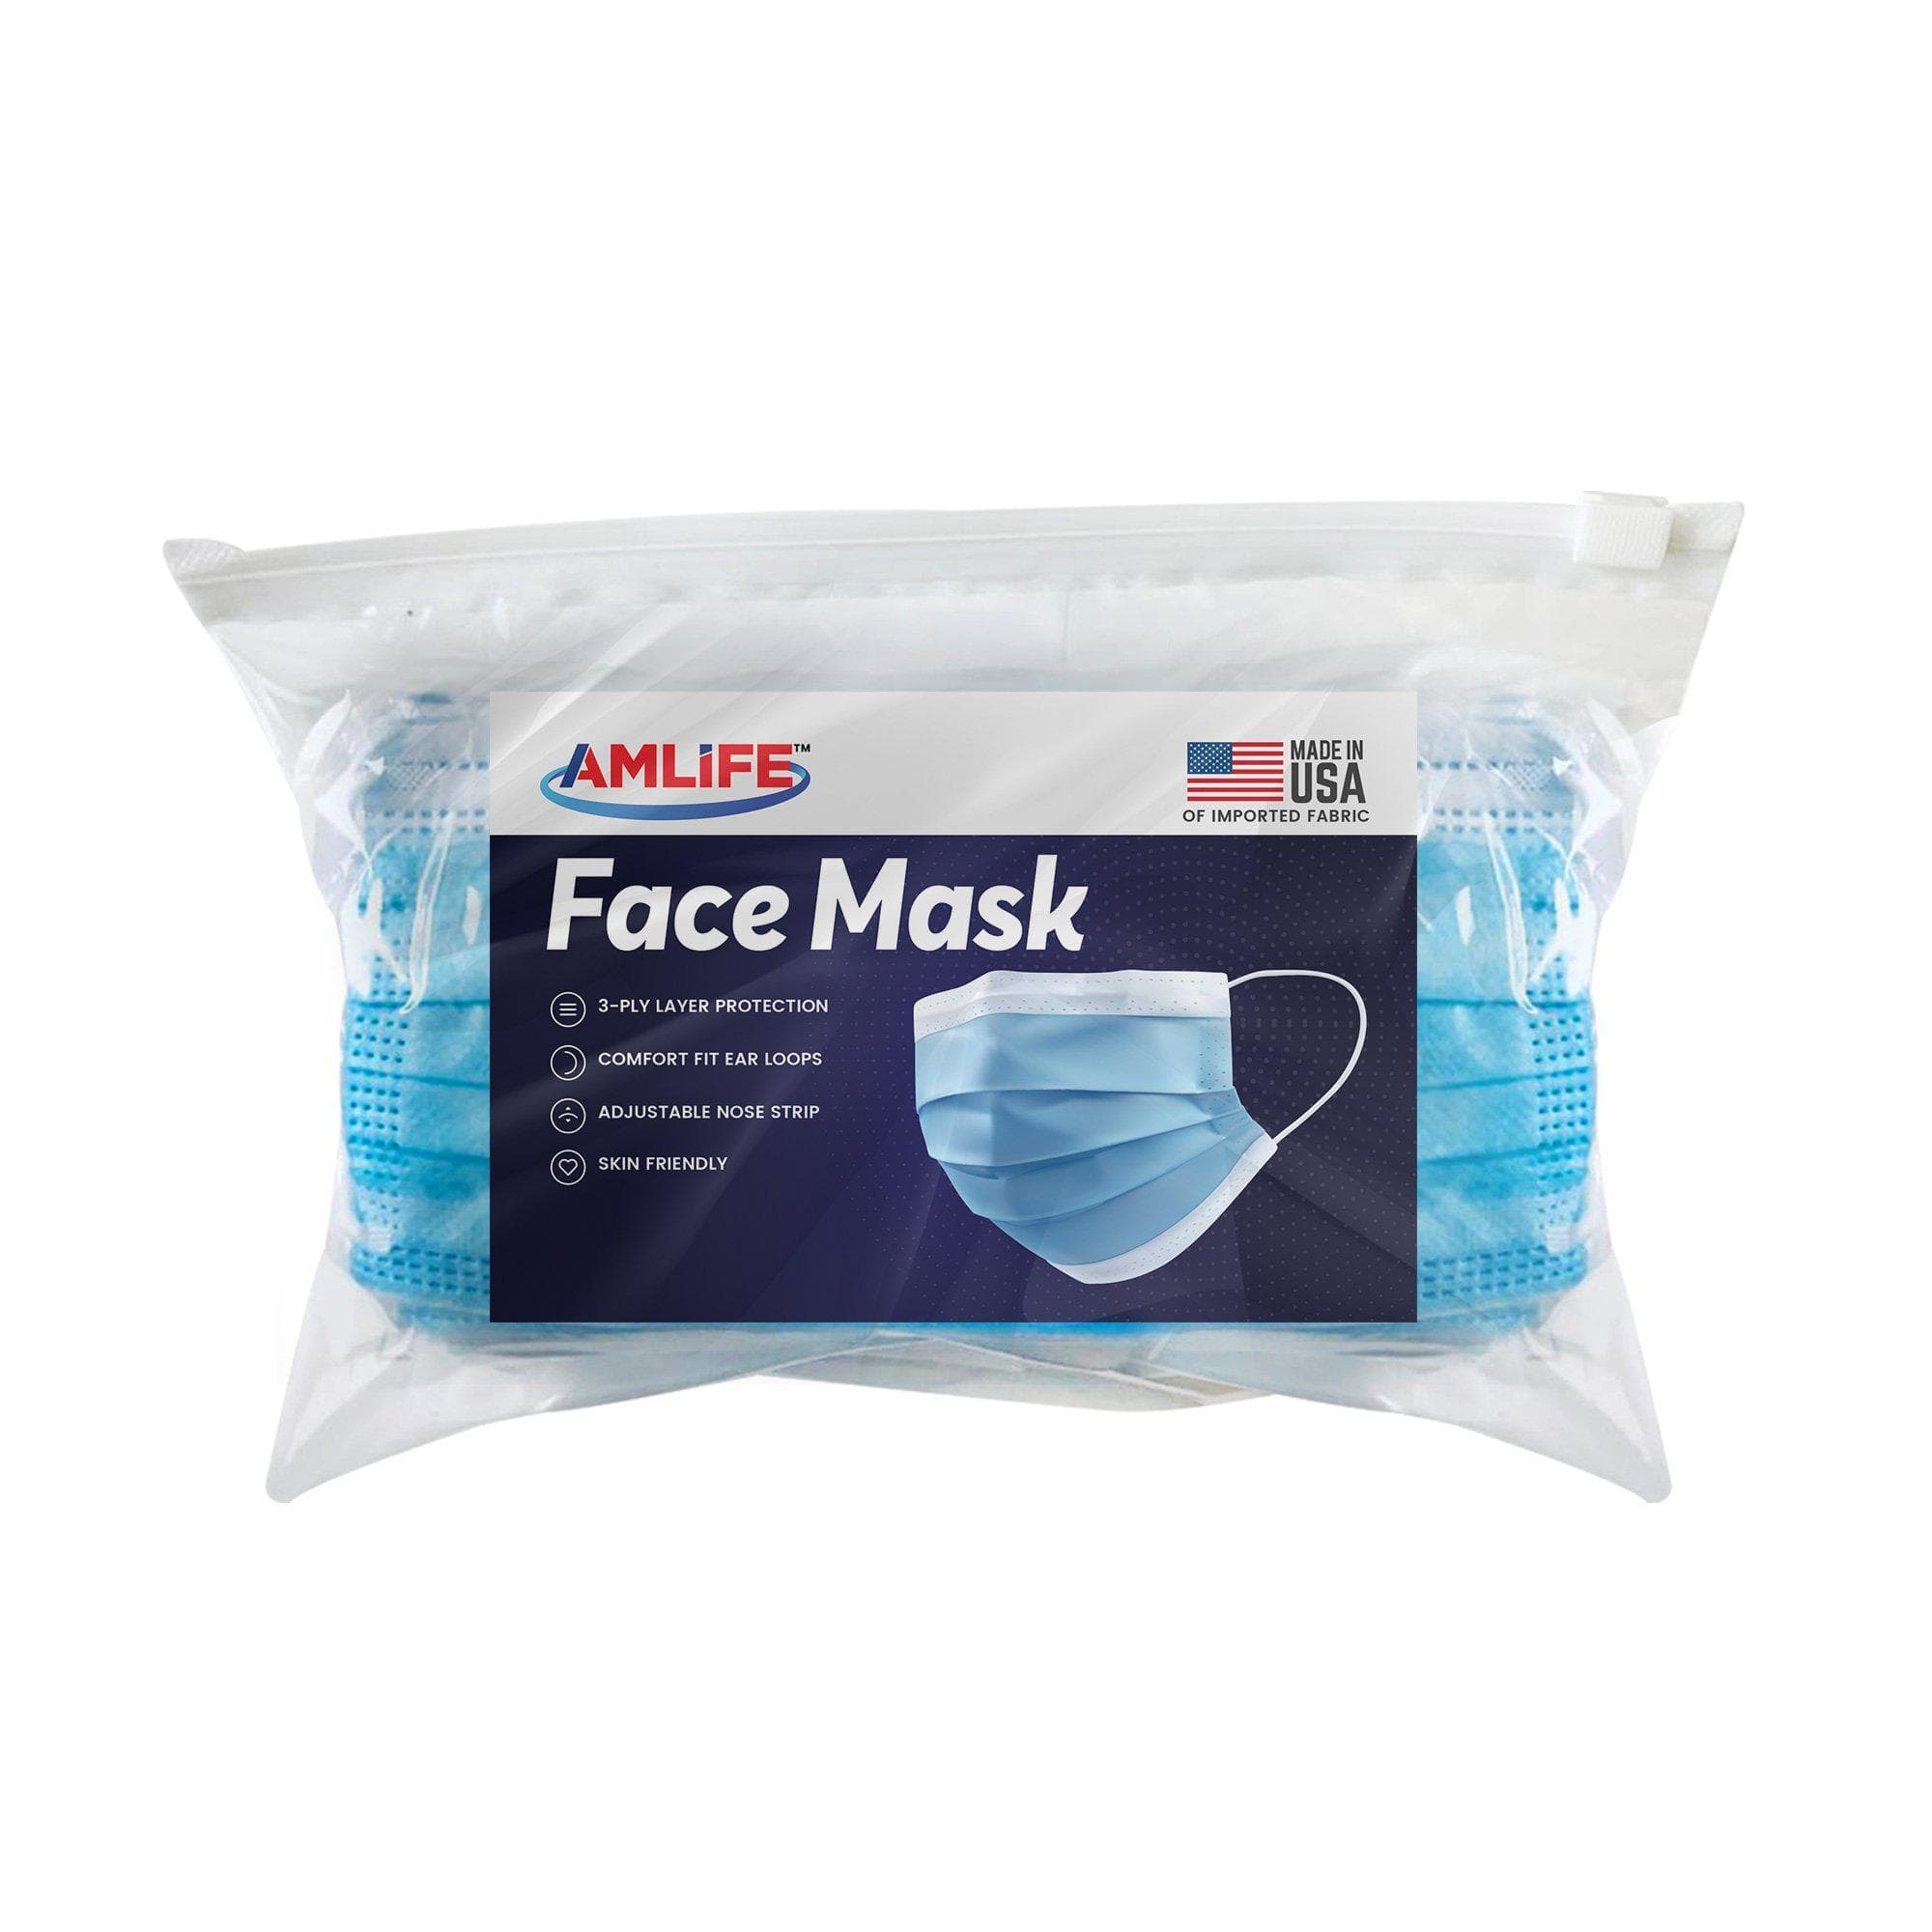 Amlife 50 Pack Face Mask Blue Made in USA Imported Fabric